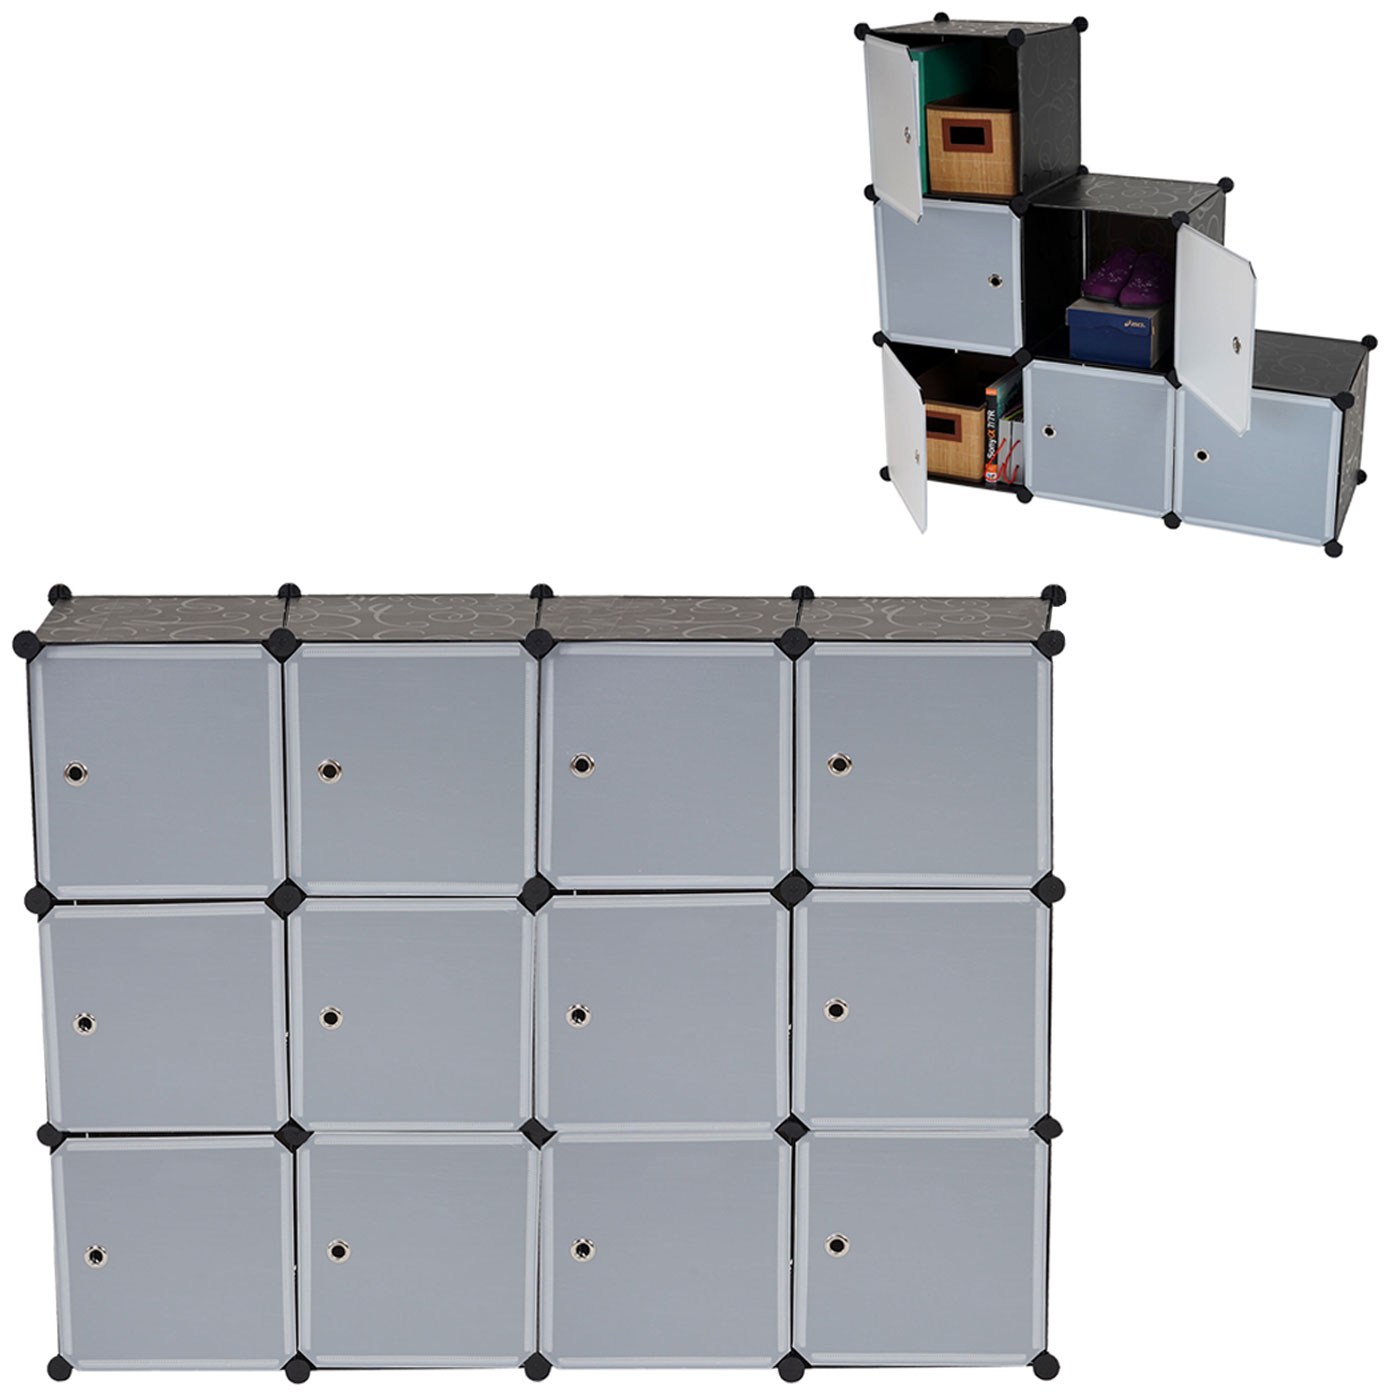 regalsystem sydney t307 steckregal schrank aufbewahrung je box 36x36x36cm ebay. Black Bedroom Furniture Sets. Home Design Ideas